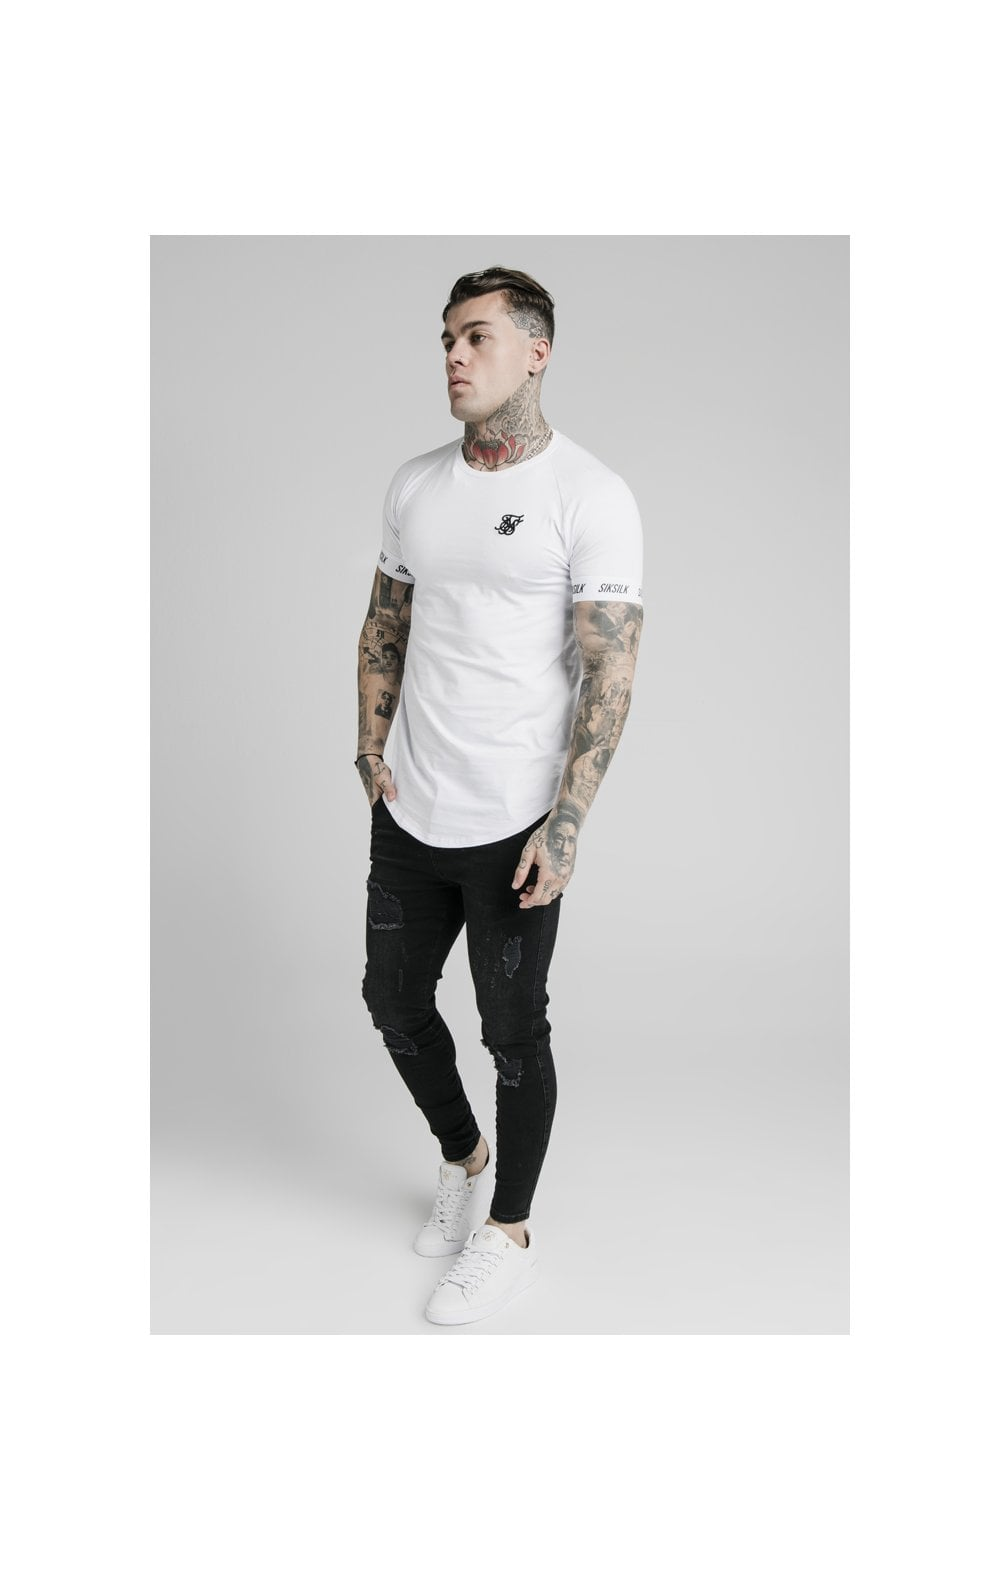 SikSilk S/S Raglan Tech Tee - White (2)